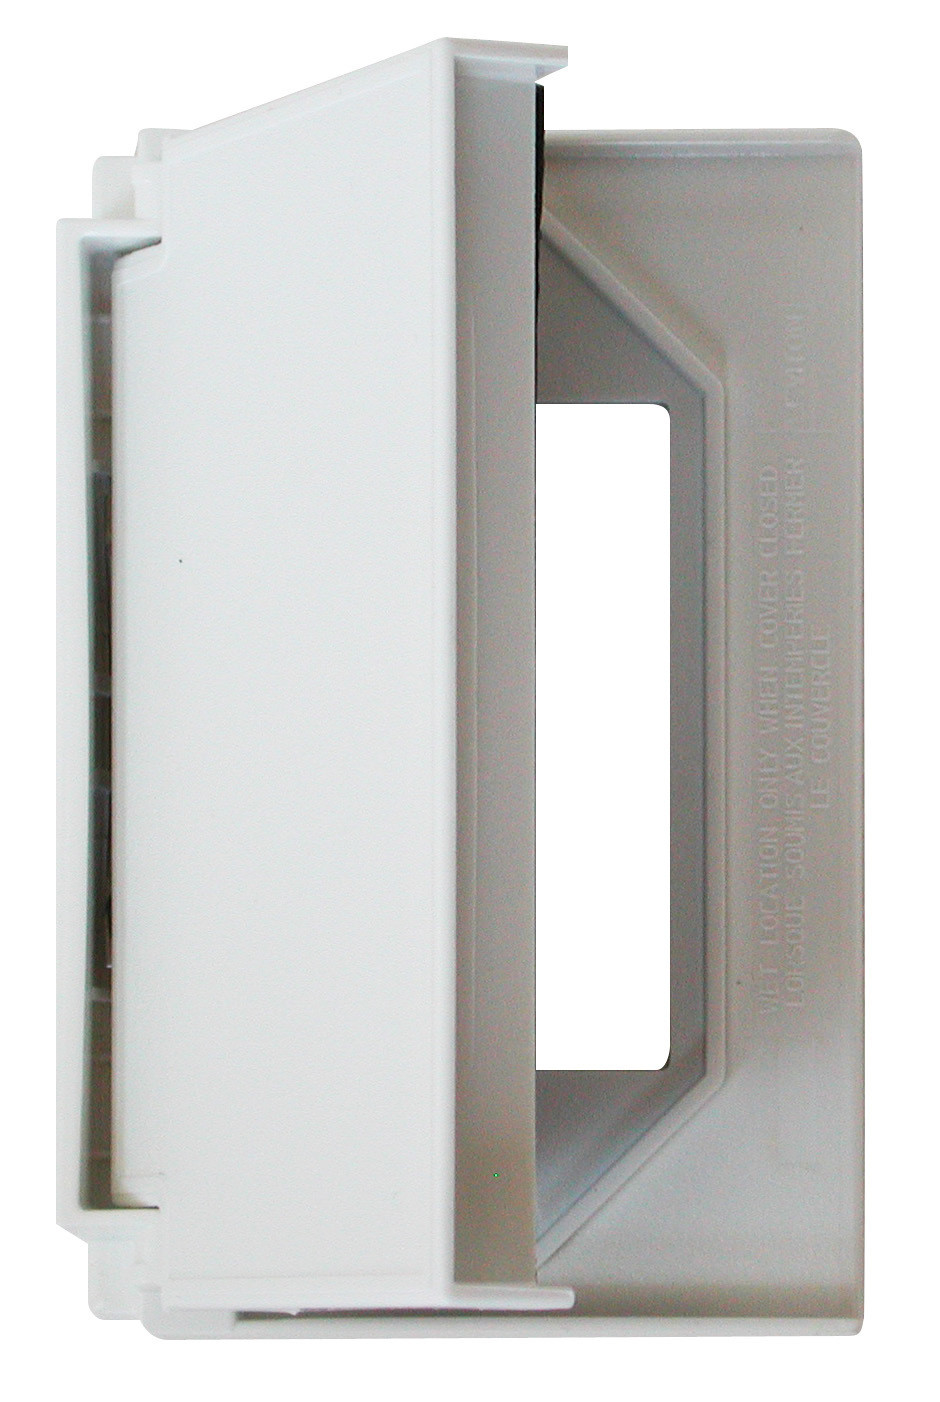 Decor Receptacle Cover - White